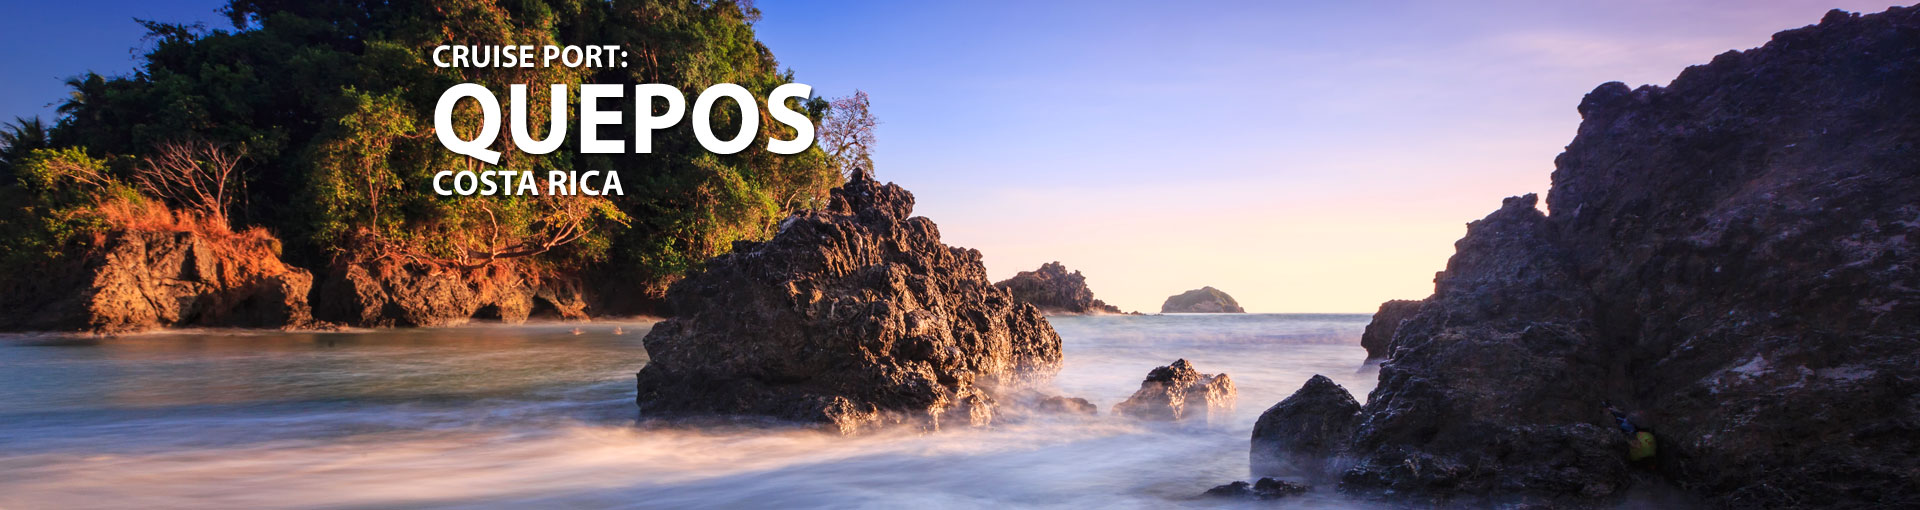 Cruises to Quepos, Costa Rica